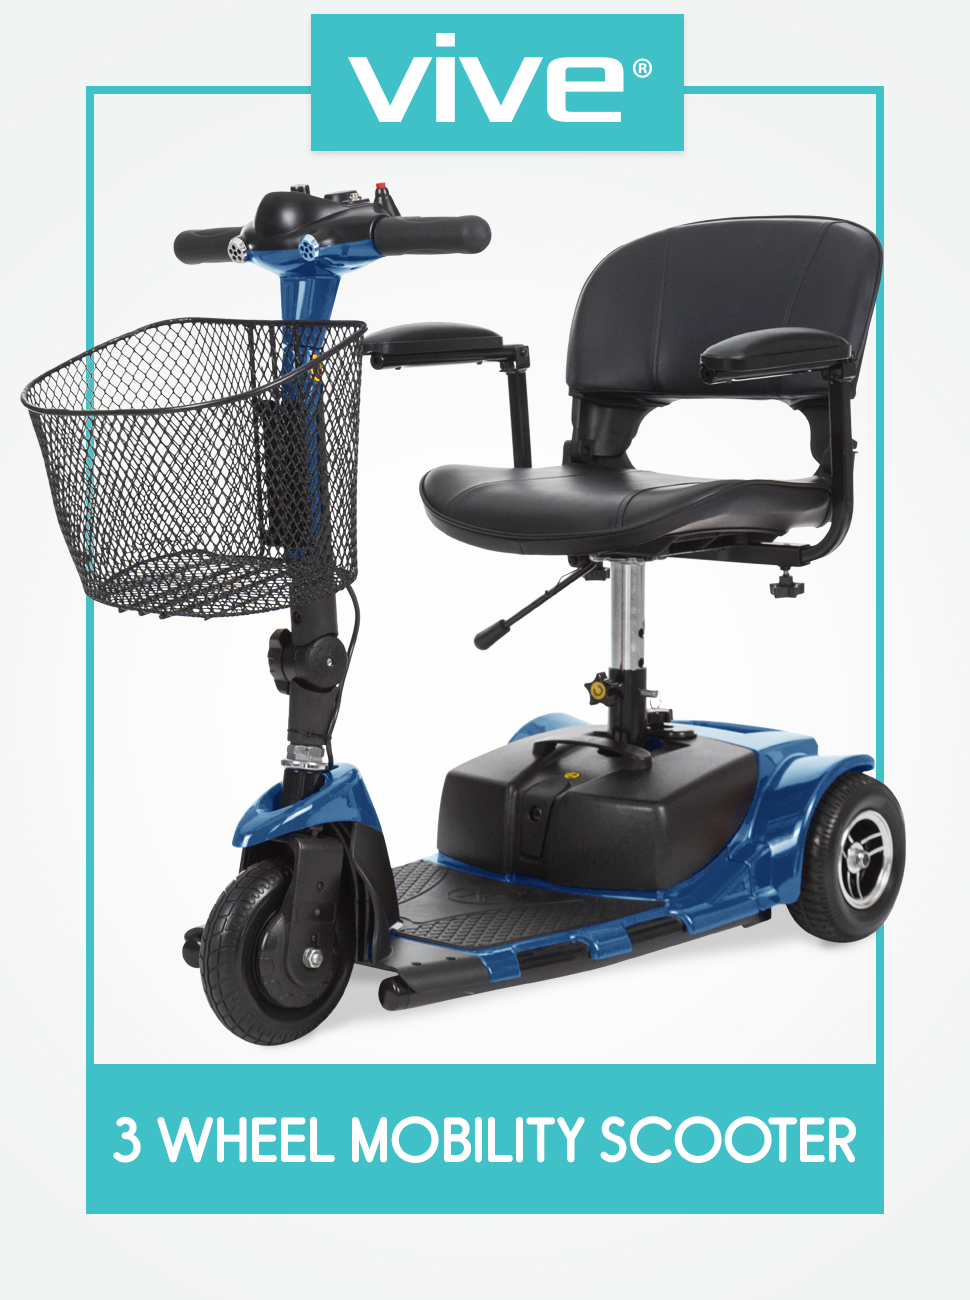 Amazon.com: Vive 3-Wheel Mobility Scooter - Electric Powered ...